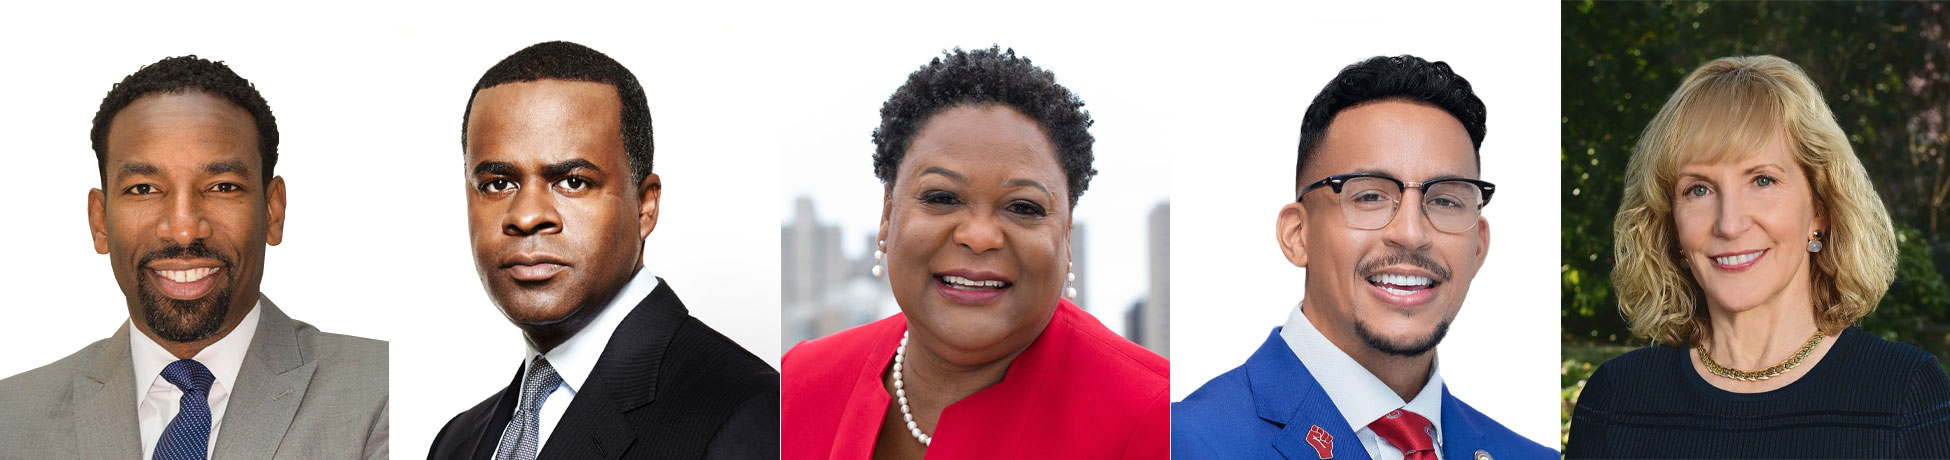 Who are Atlanta's 2021 mayoral candidates?